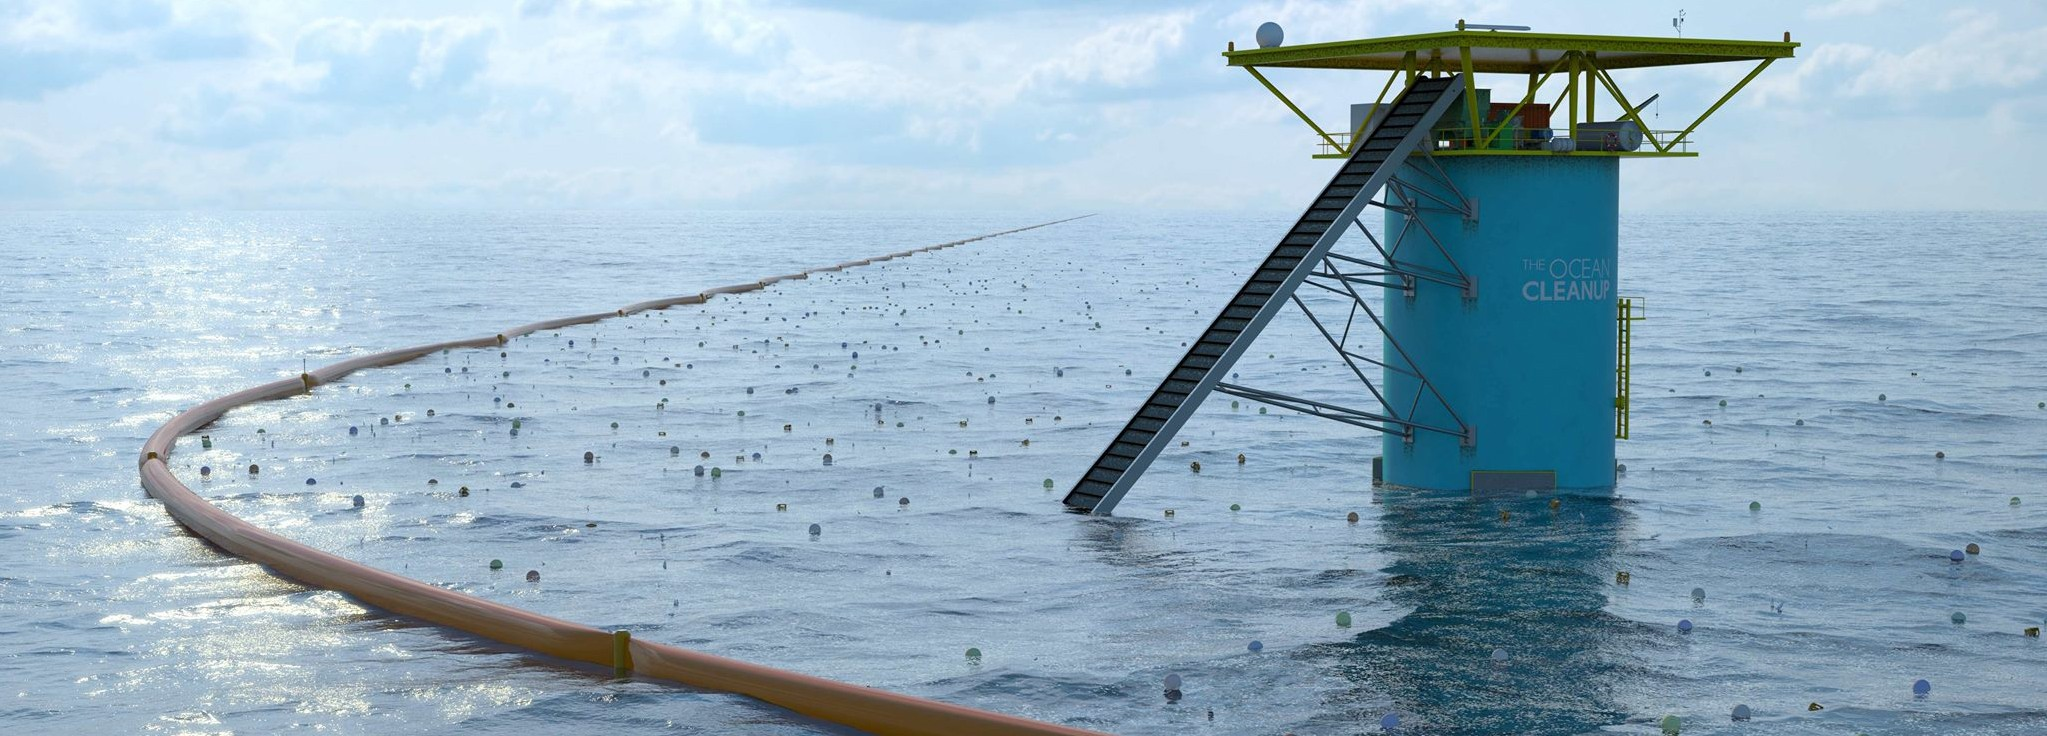 Boyan Slat and the Great Pacific Garbage Patch